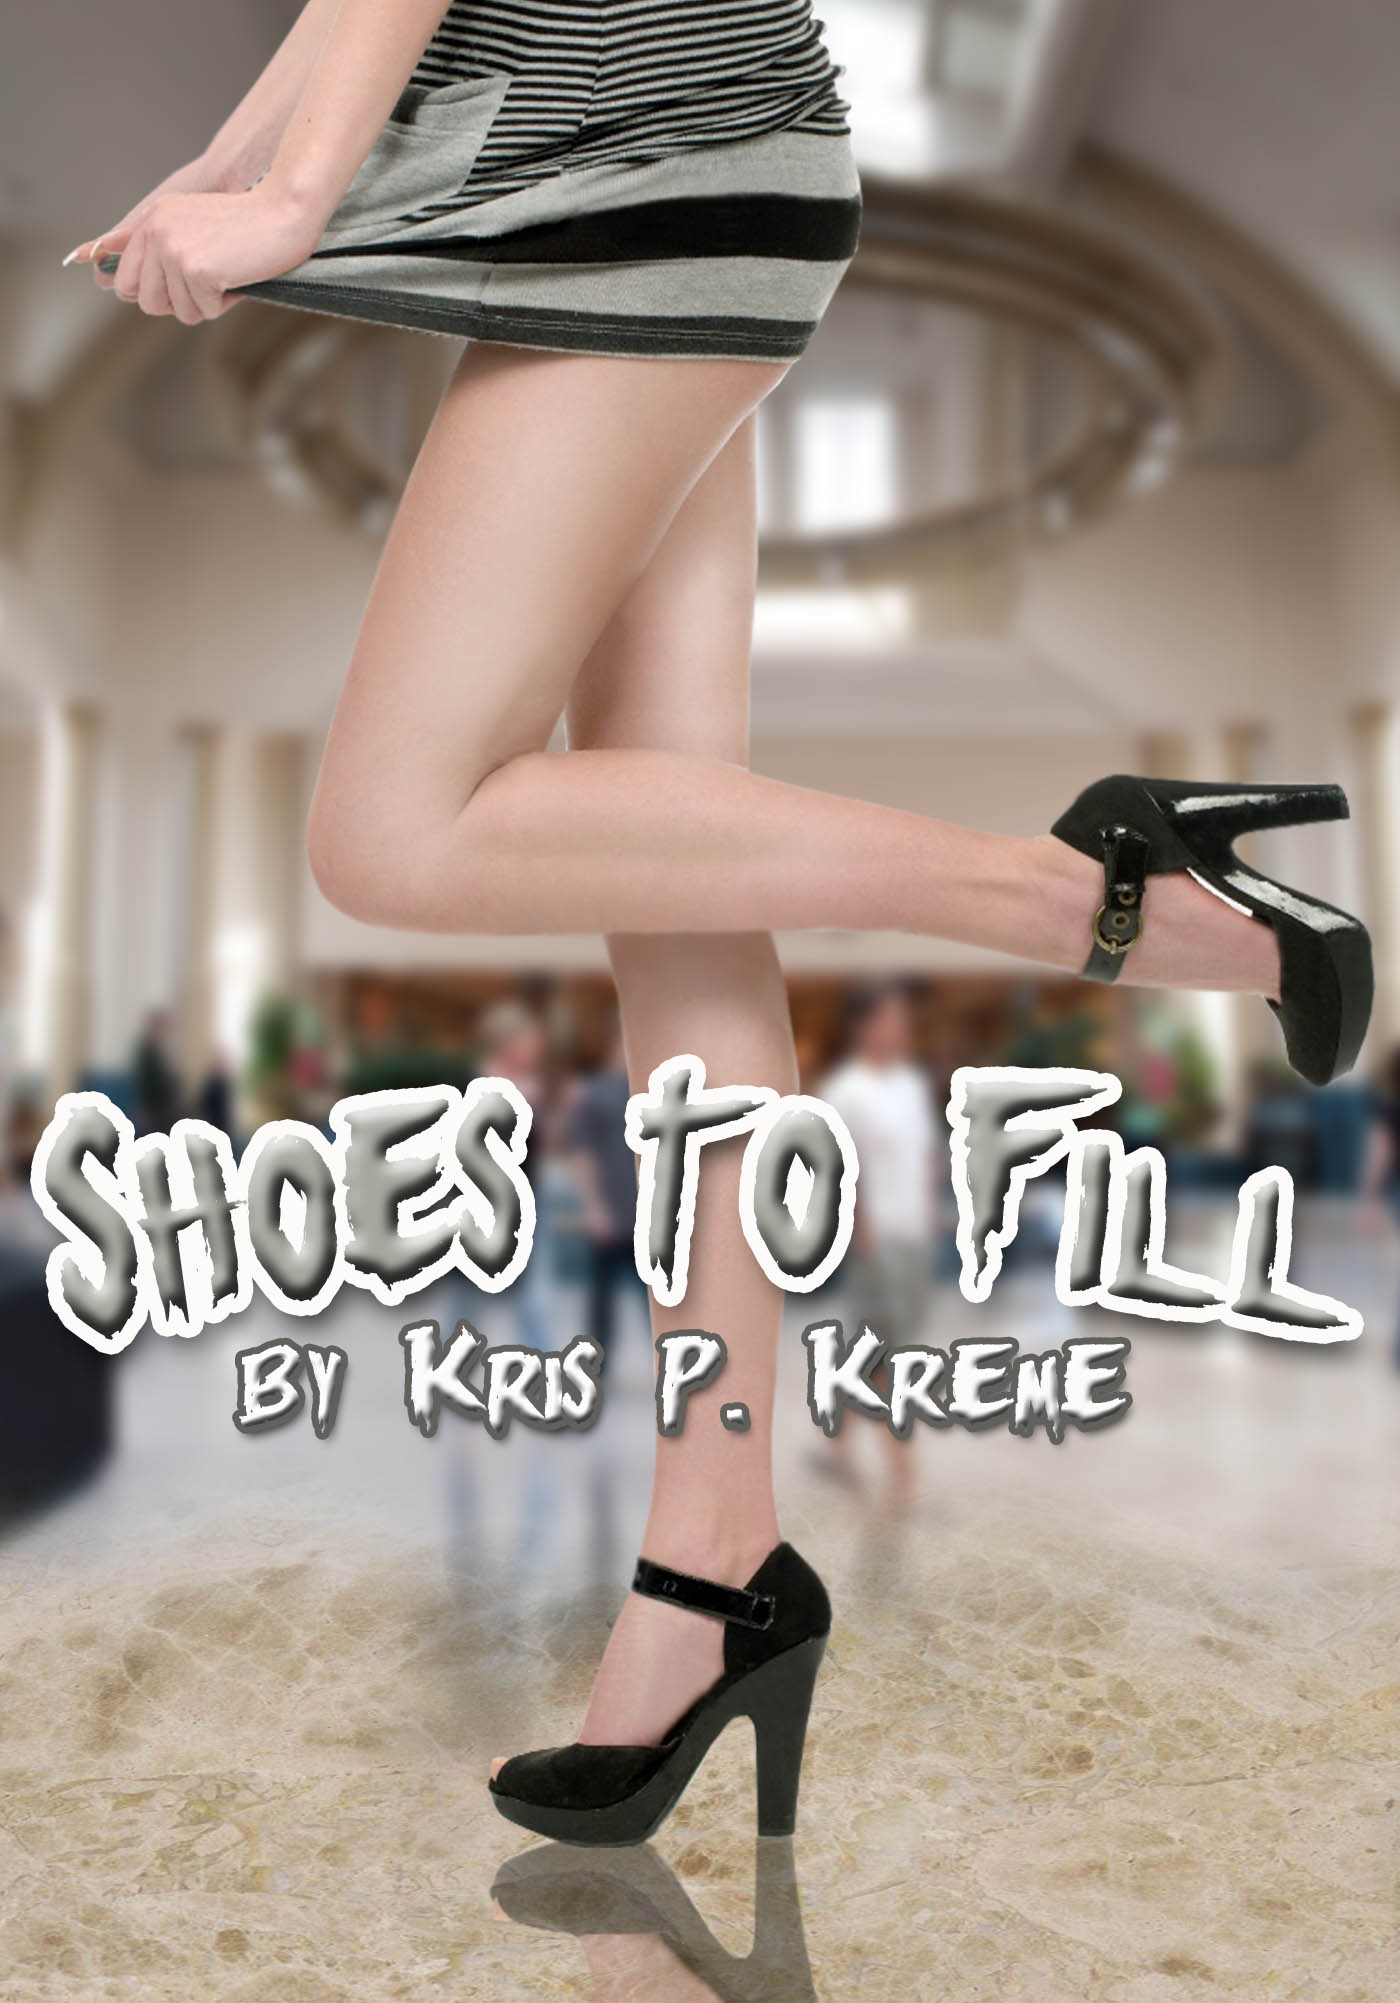 Shoes To Fill by Kris P. Kreme